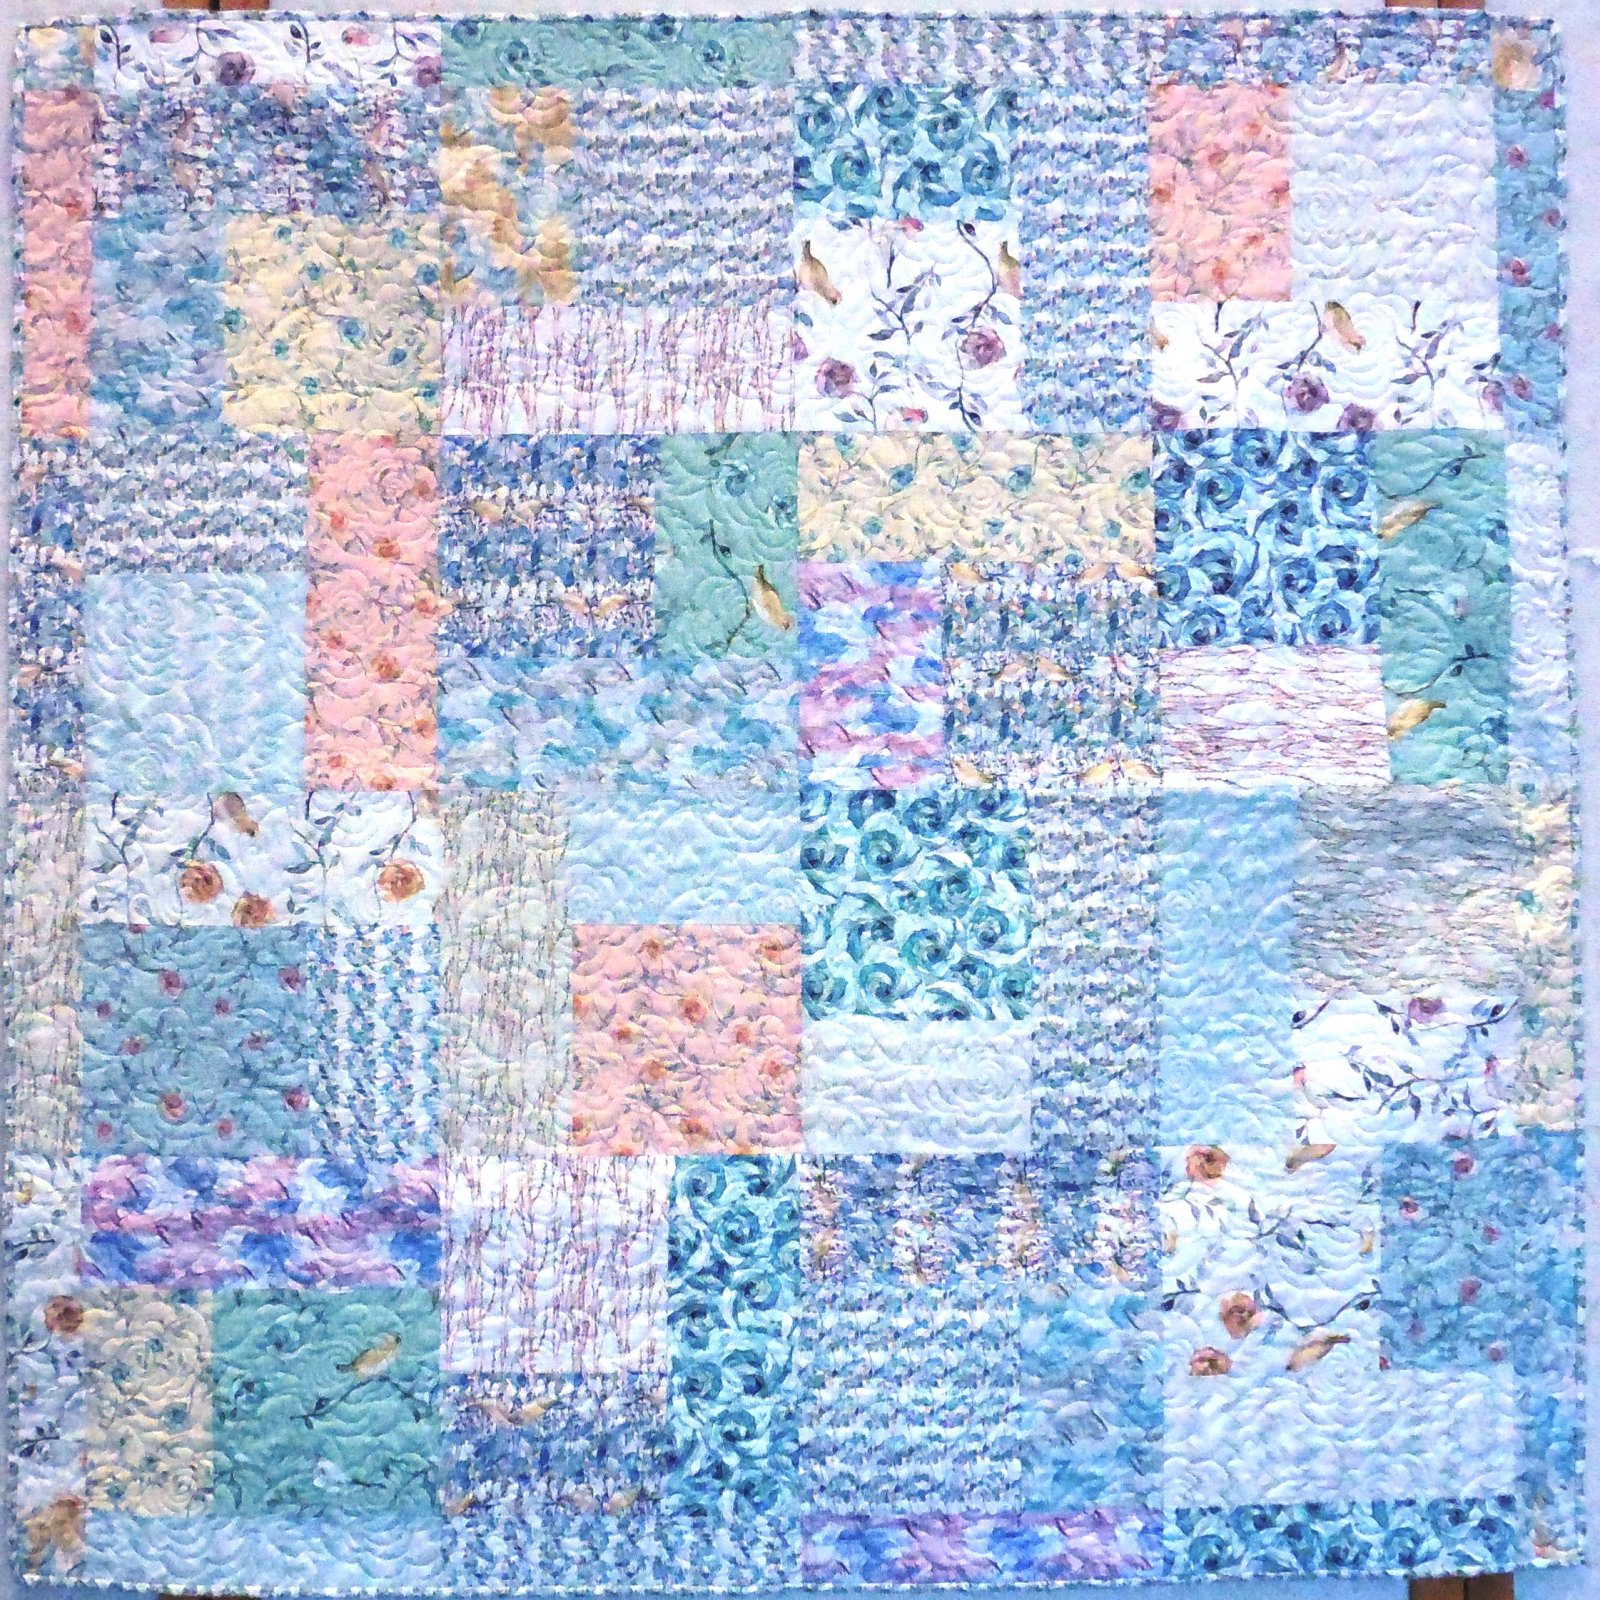 Bloom Beautiful - Finished Quilt - 61.5 -61.5